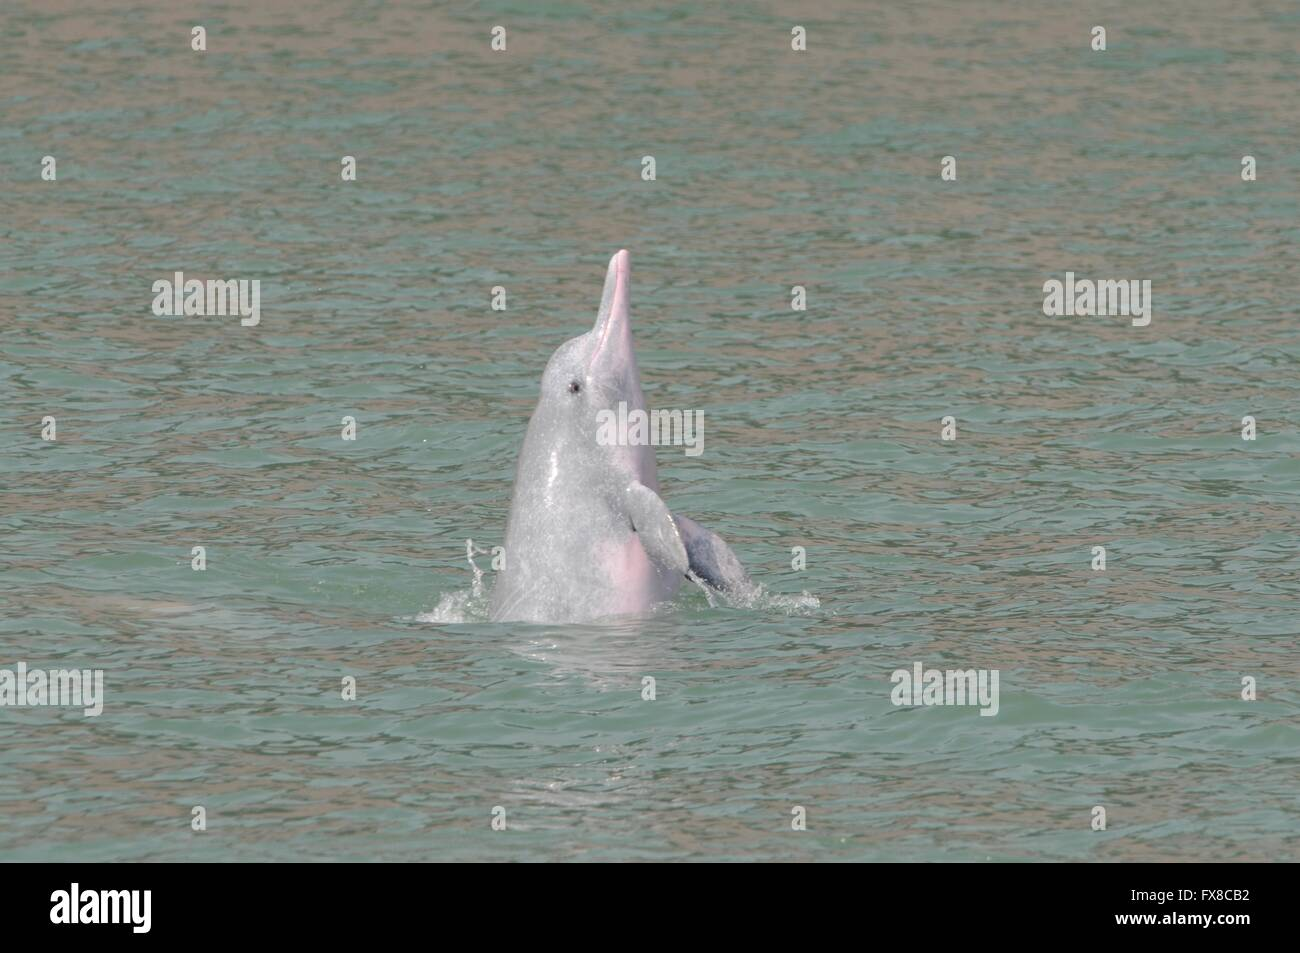 Chinese white dolphin off Hong Kong - Stock Image